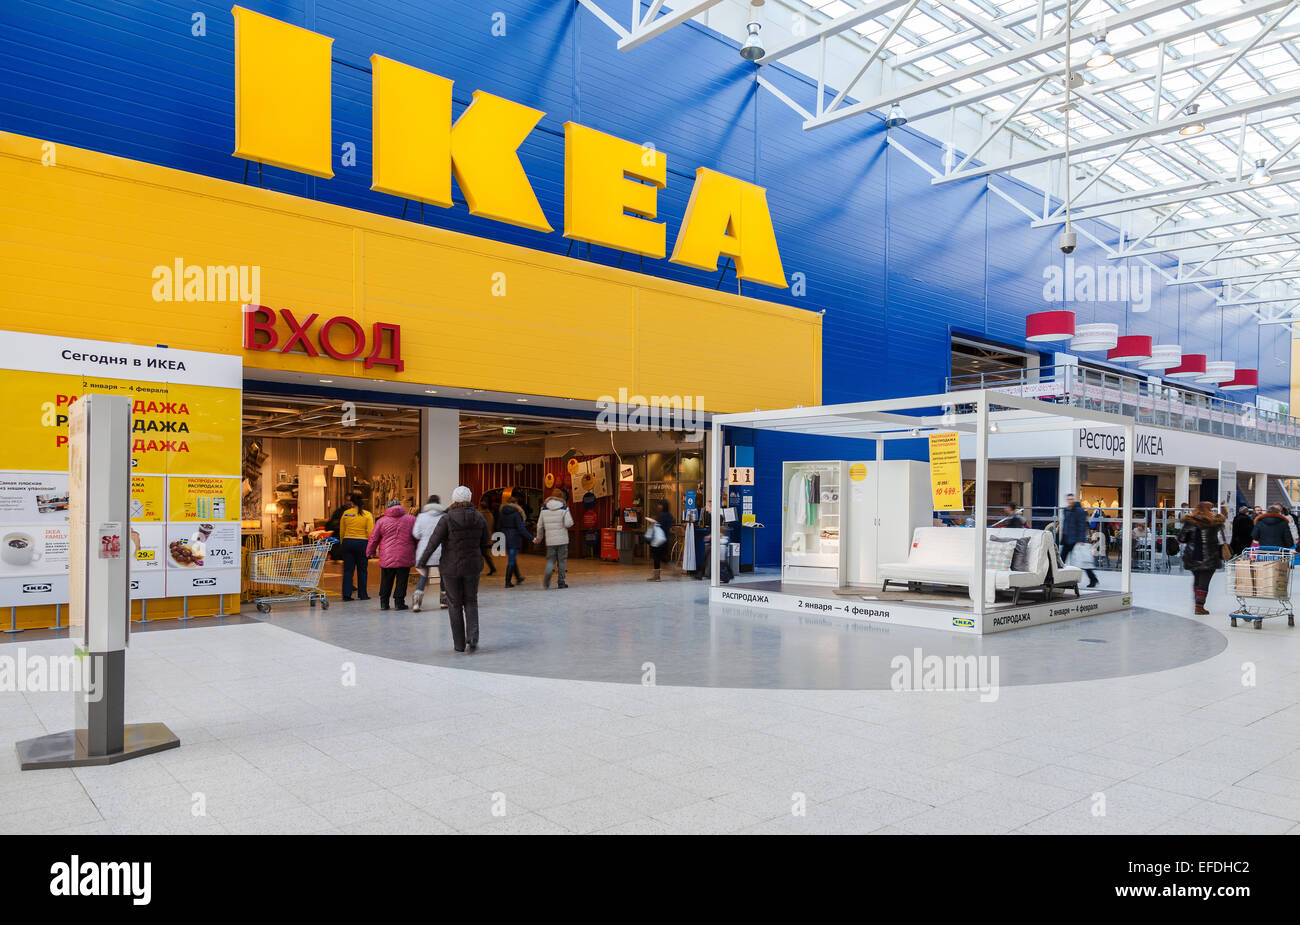 ikea samara store ikea is the world 39 s largest furniture. Black Bedroom Furniture Sets. Home Design Ideas